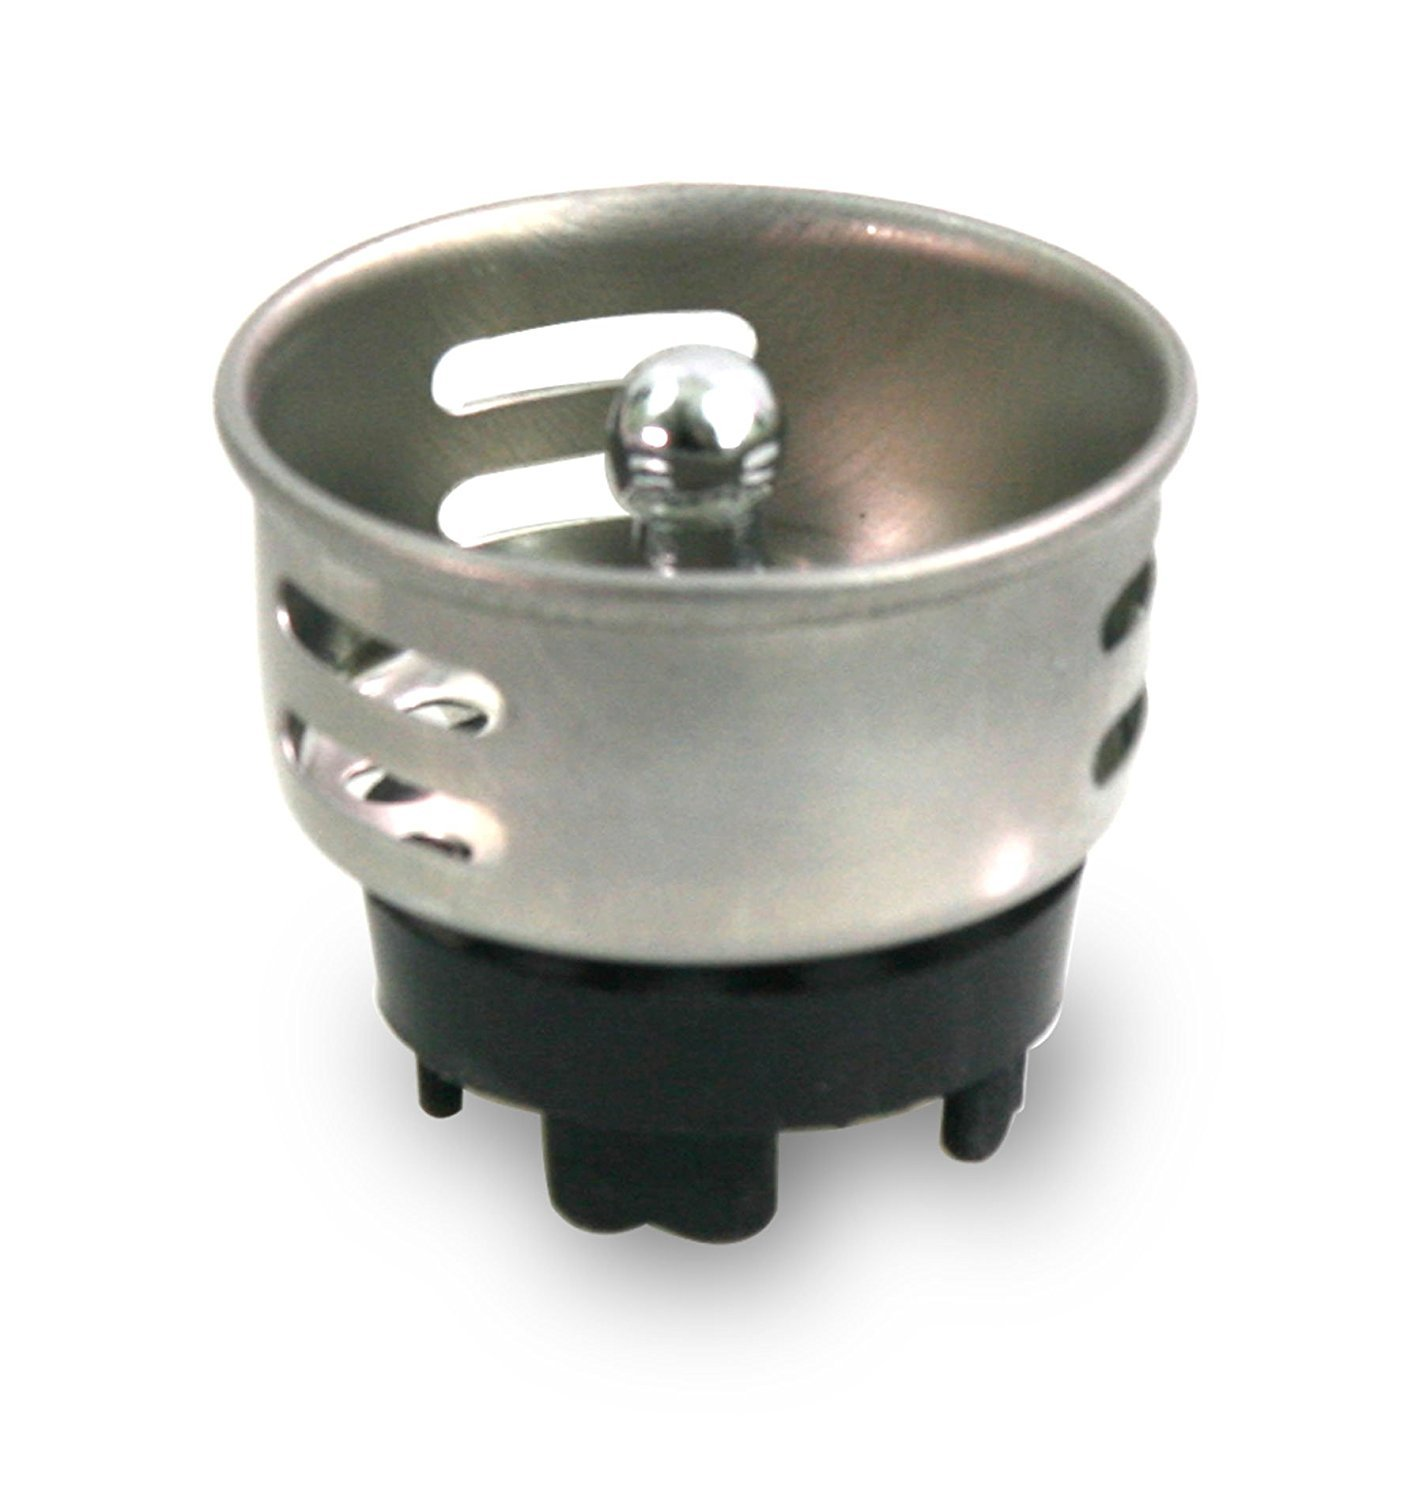 Everflow 75511 Stainless Steel Junior Duo Strainer / Stopper (1.5 inch) - Replacement Basket for Bar and Prep Sinks Drains